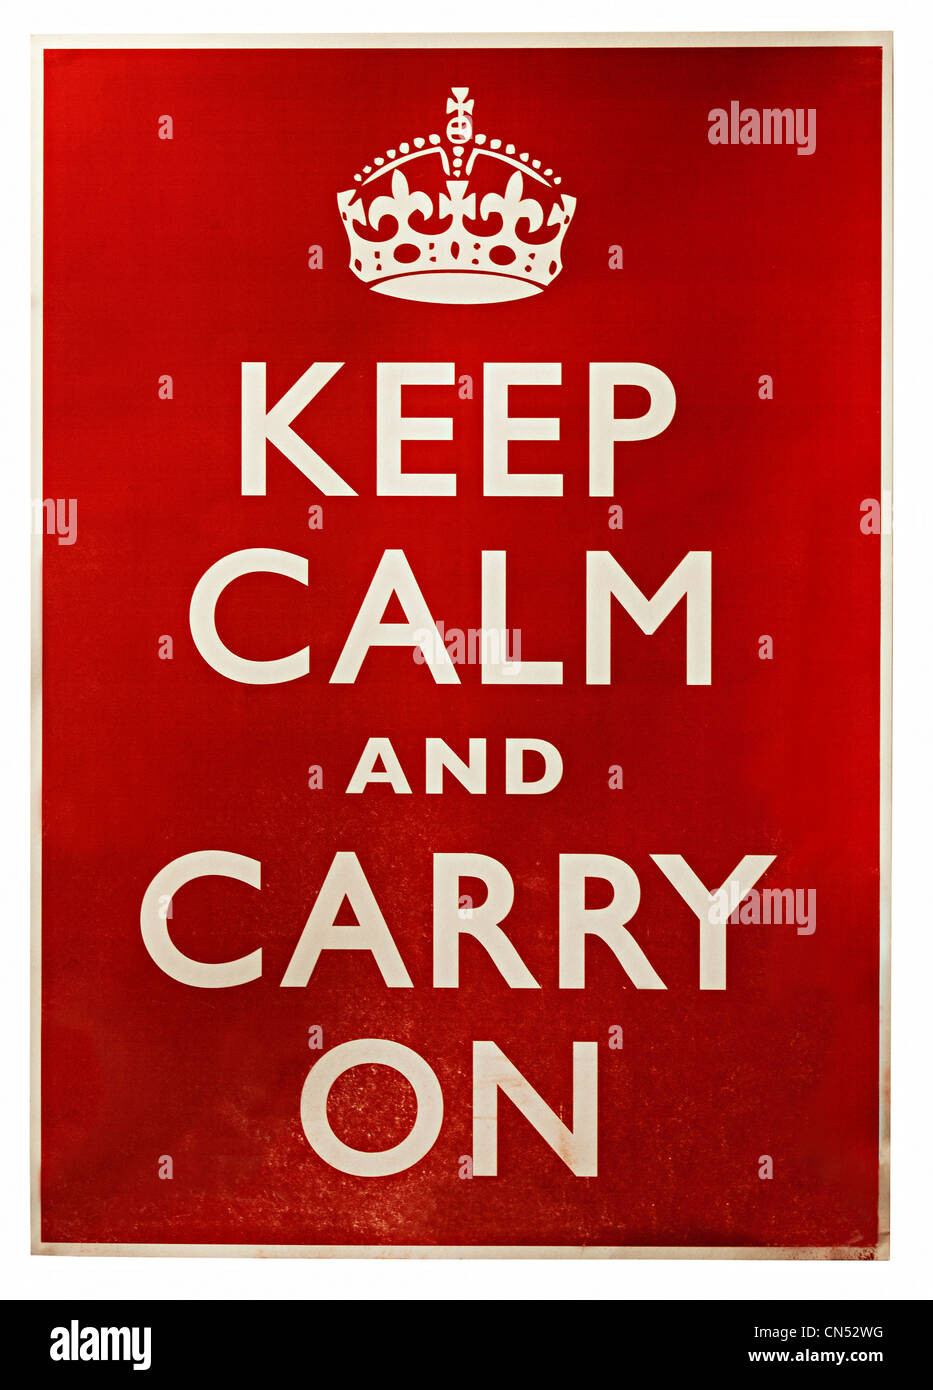 Affiche de guerre britannique publié en 1939, Keep calm and carry on, England, UK Photo Stock